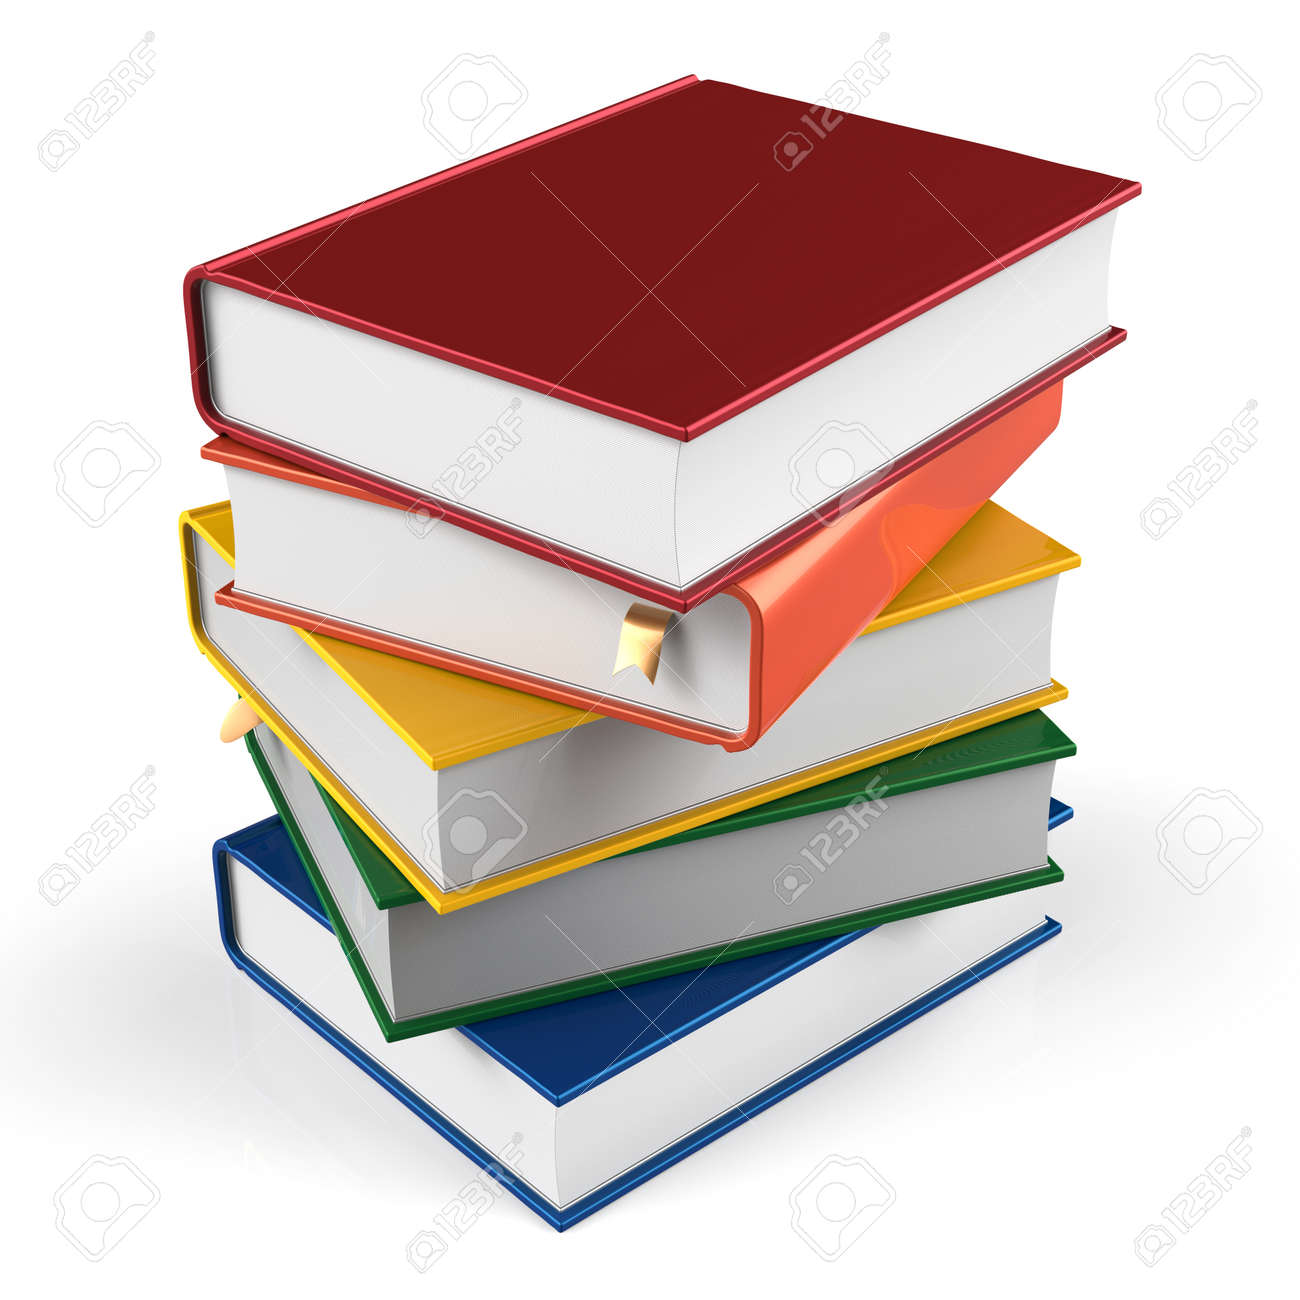 book stack of textbooks blank hard covers colorful books bookmark